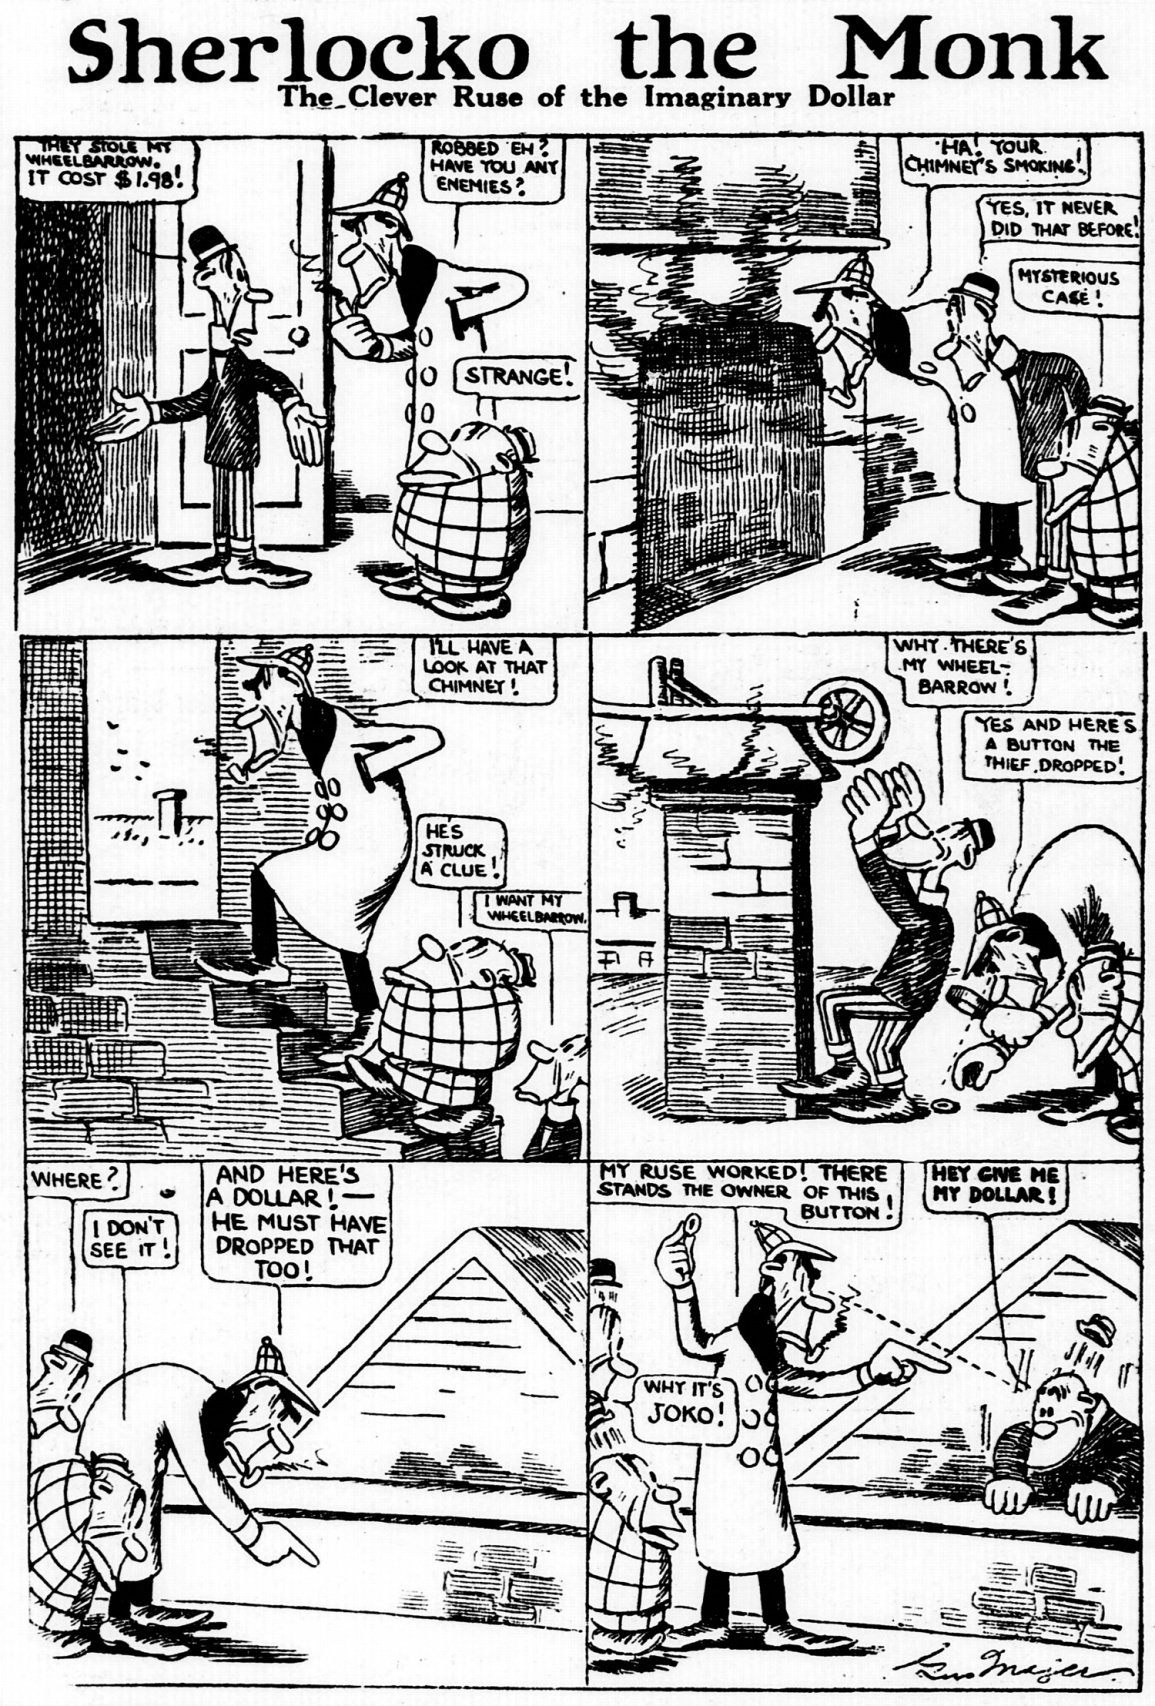 Sherlocko the Monk: The Clever Ruse of the Imaginary Dollar (January 5, 1911)